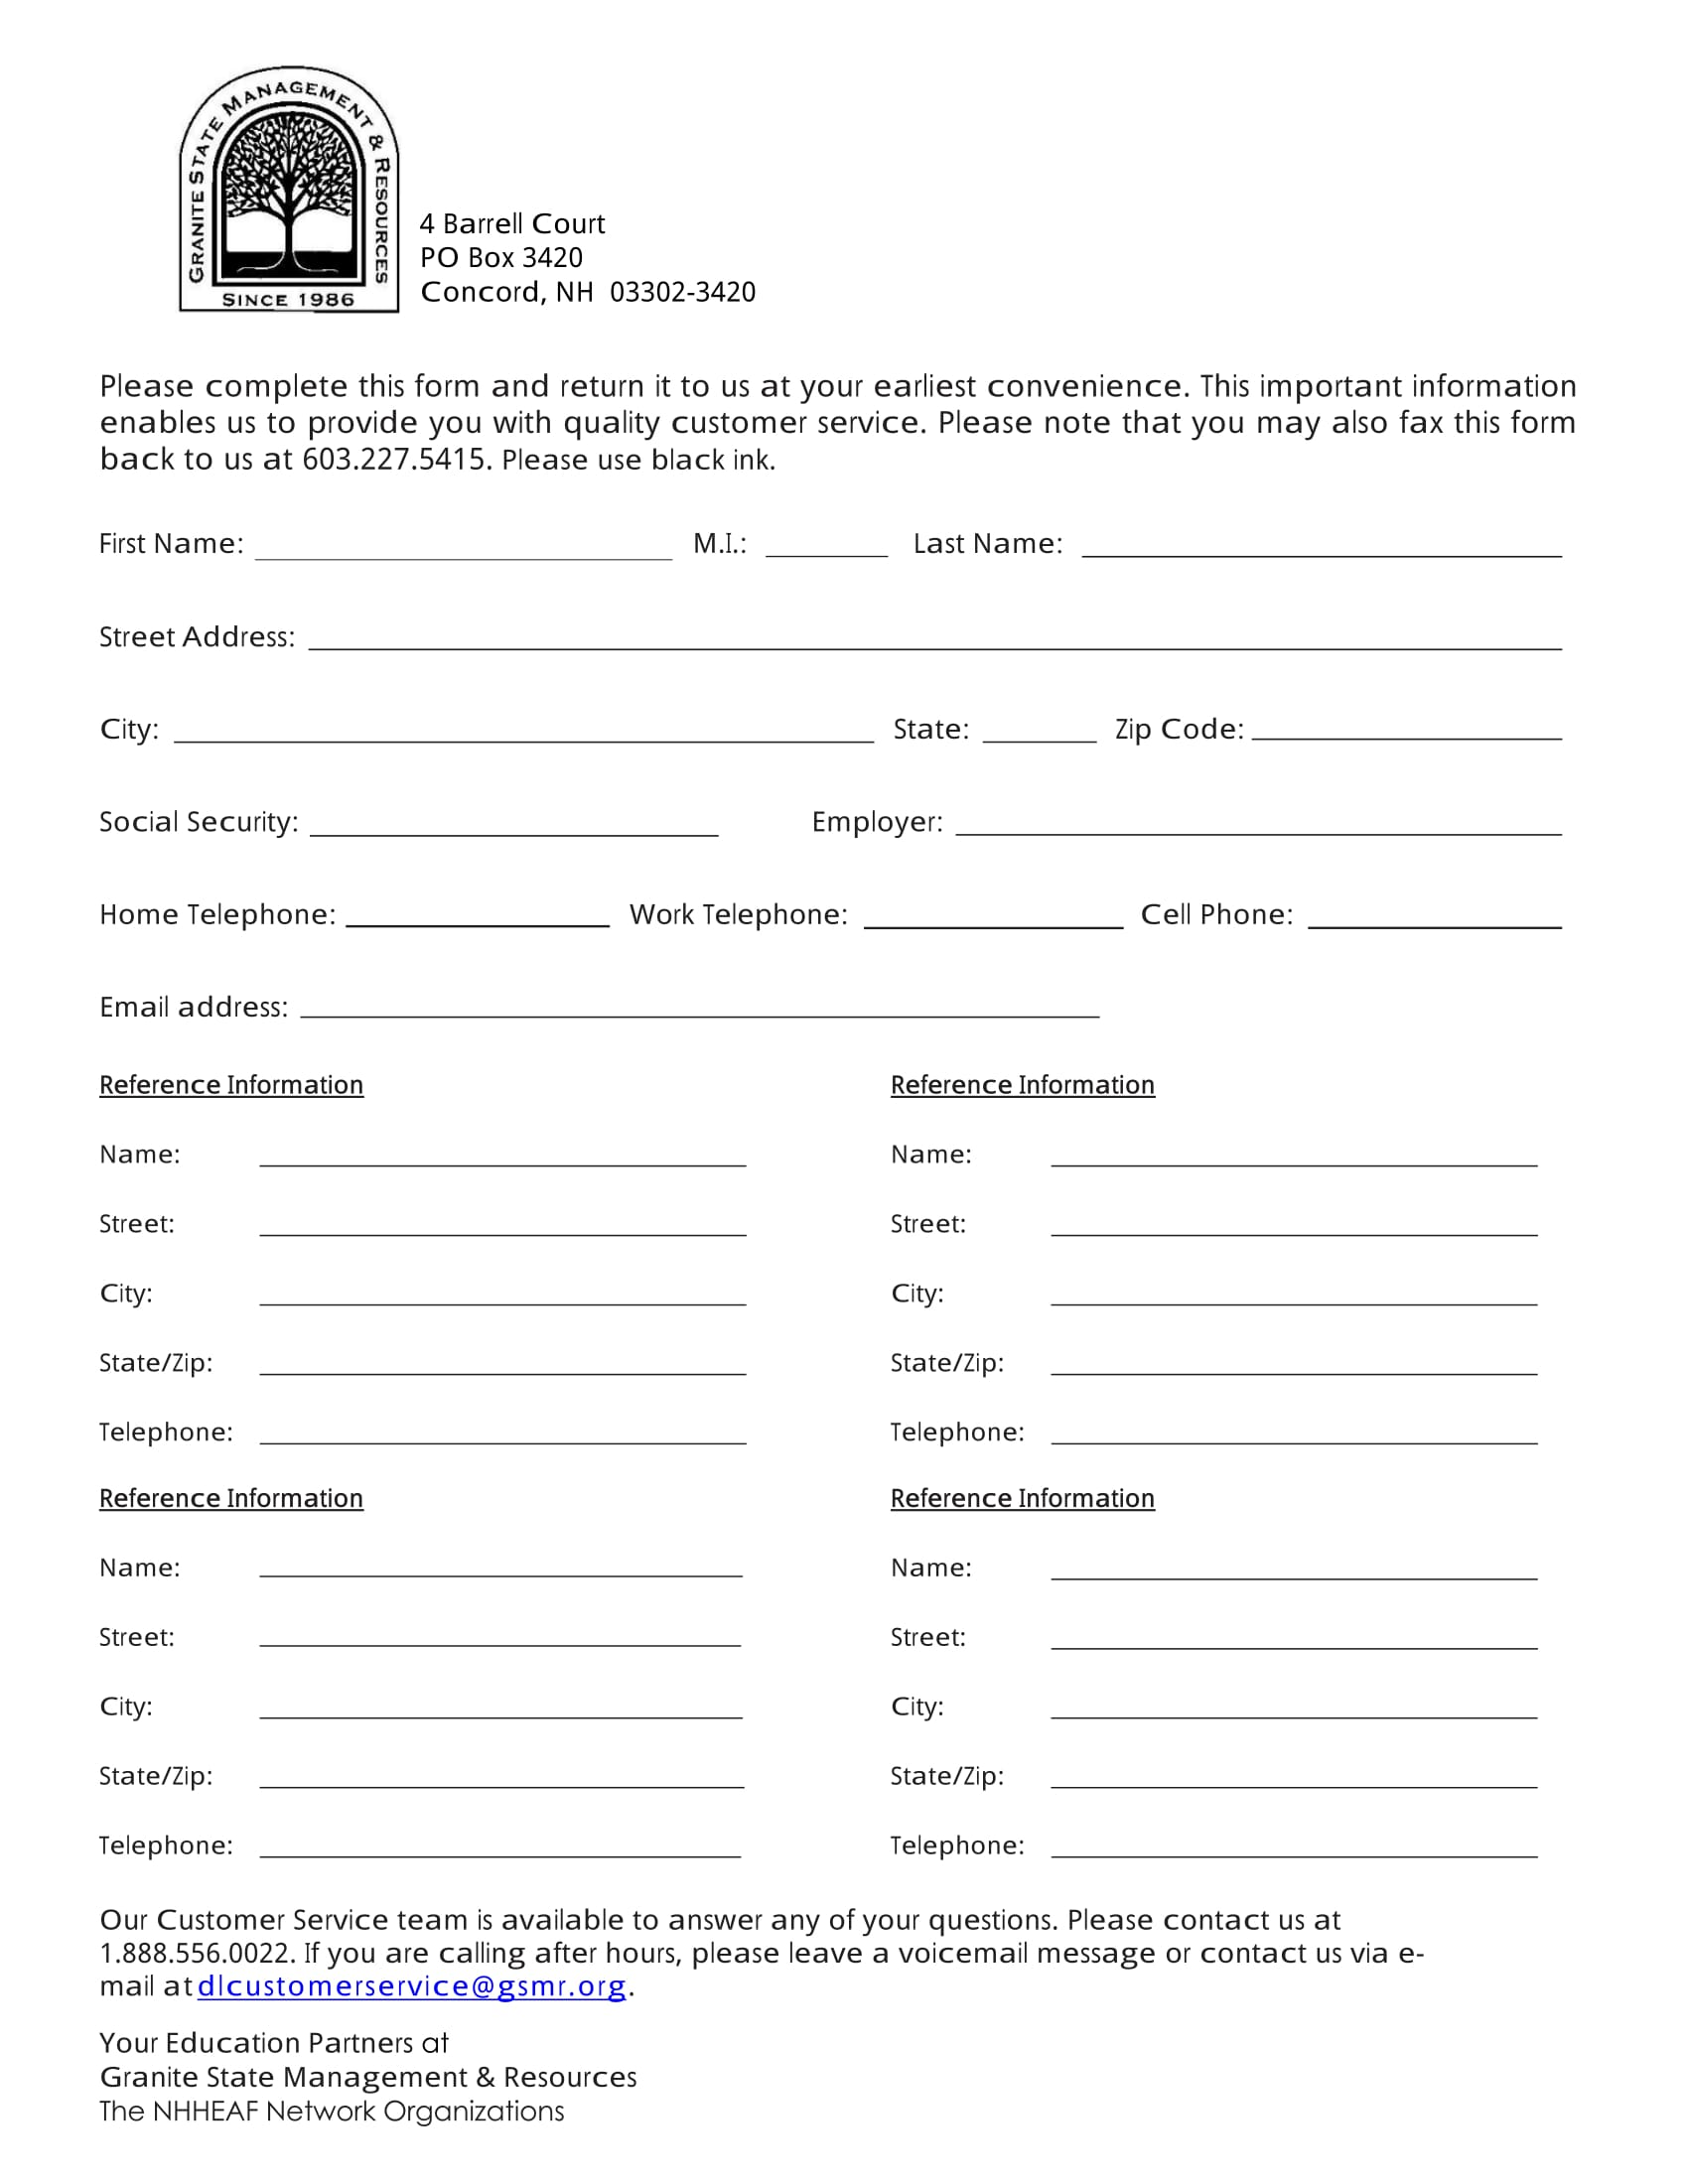 Client Contact Information Form  Customer Contact Information Form